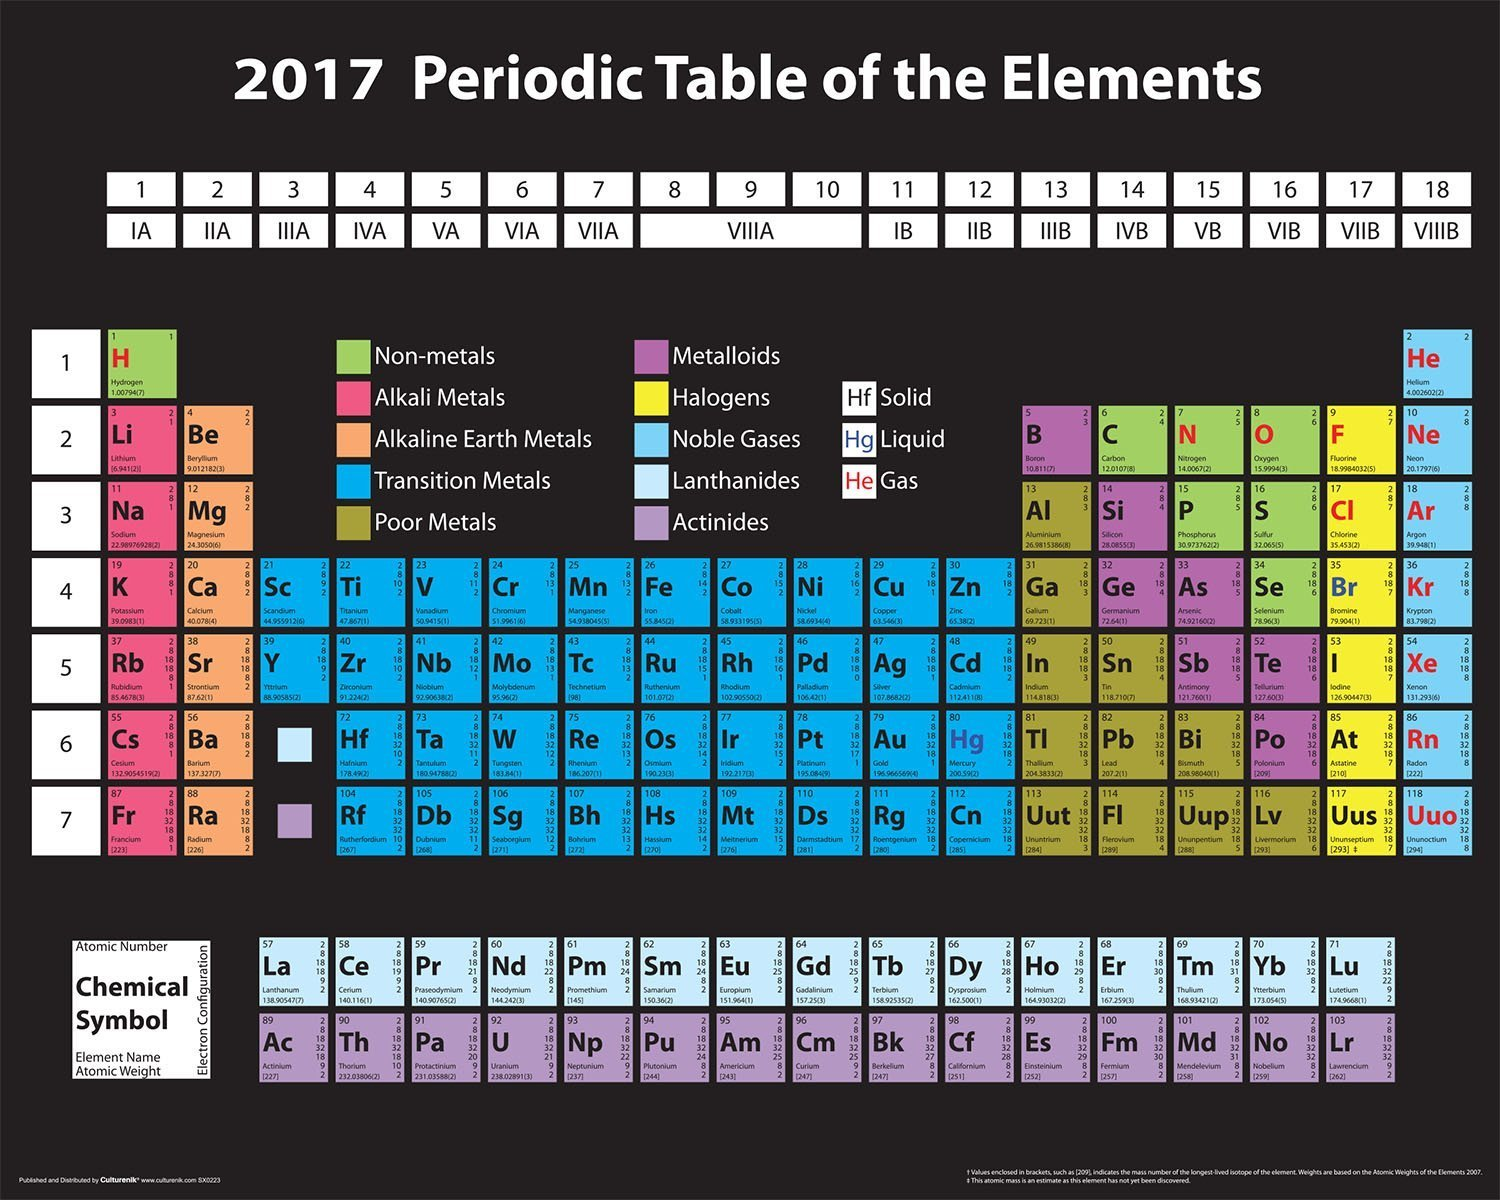 Amazon periodic table of elements 2017 decorative educational amazon periodic table of elements 2017 decorative educational science classroom poster print unframed 16x20 posters prints gamestrikefo Choice Image